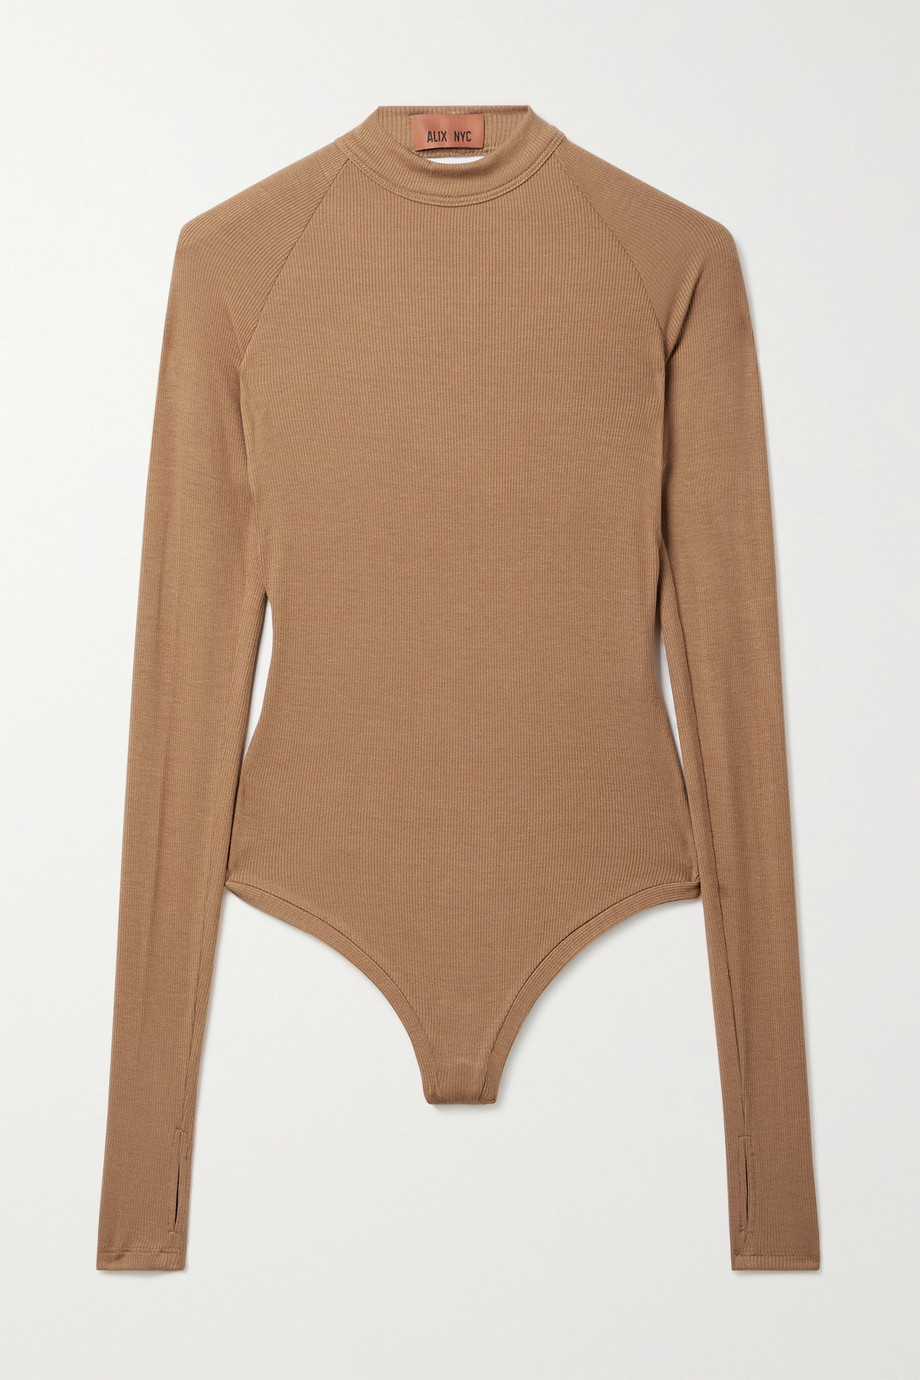 ALIX NYC Ives twist-back ribbed stretch-modal jersey thong bodysuit